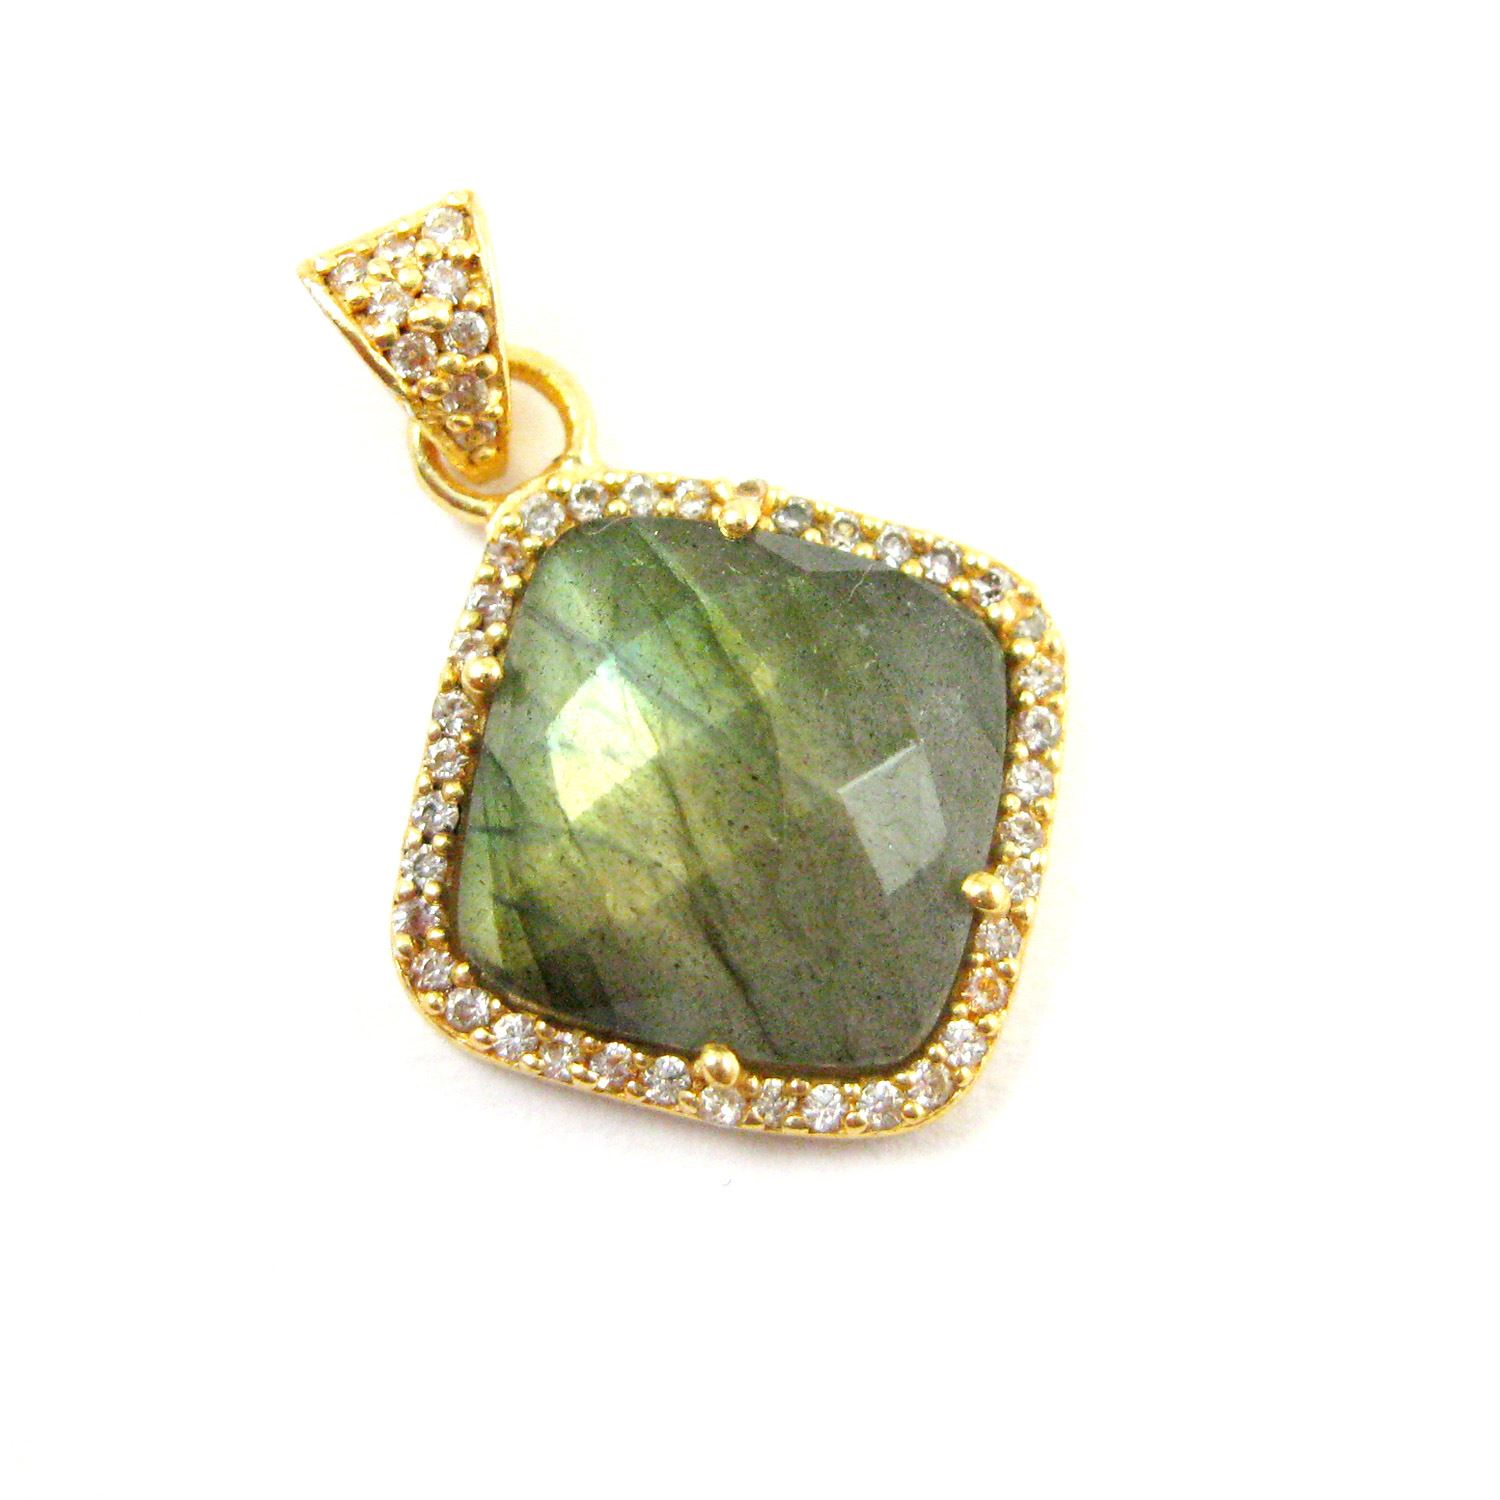 Gold plated Sterling Silver Pave Bezel Gemstone Pendant - Cubic Zirconia Pave Setting -  Diamond Shape Faceted Stone- Labradorite - 17mm